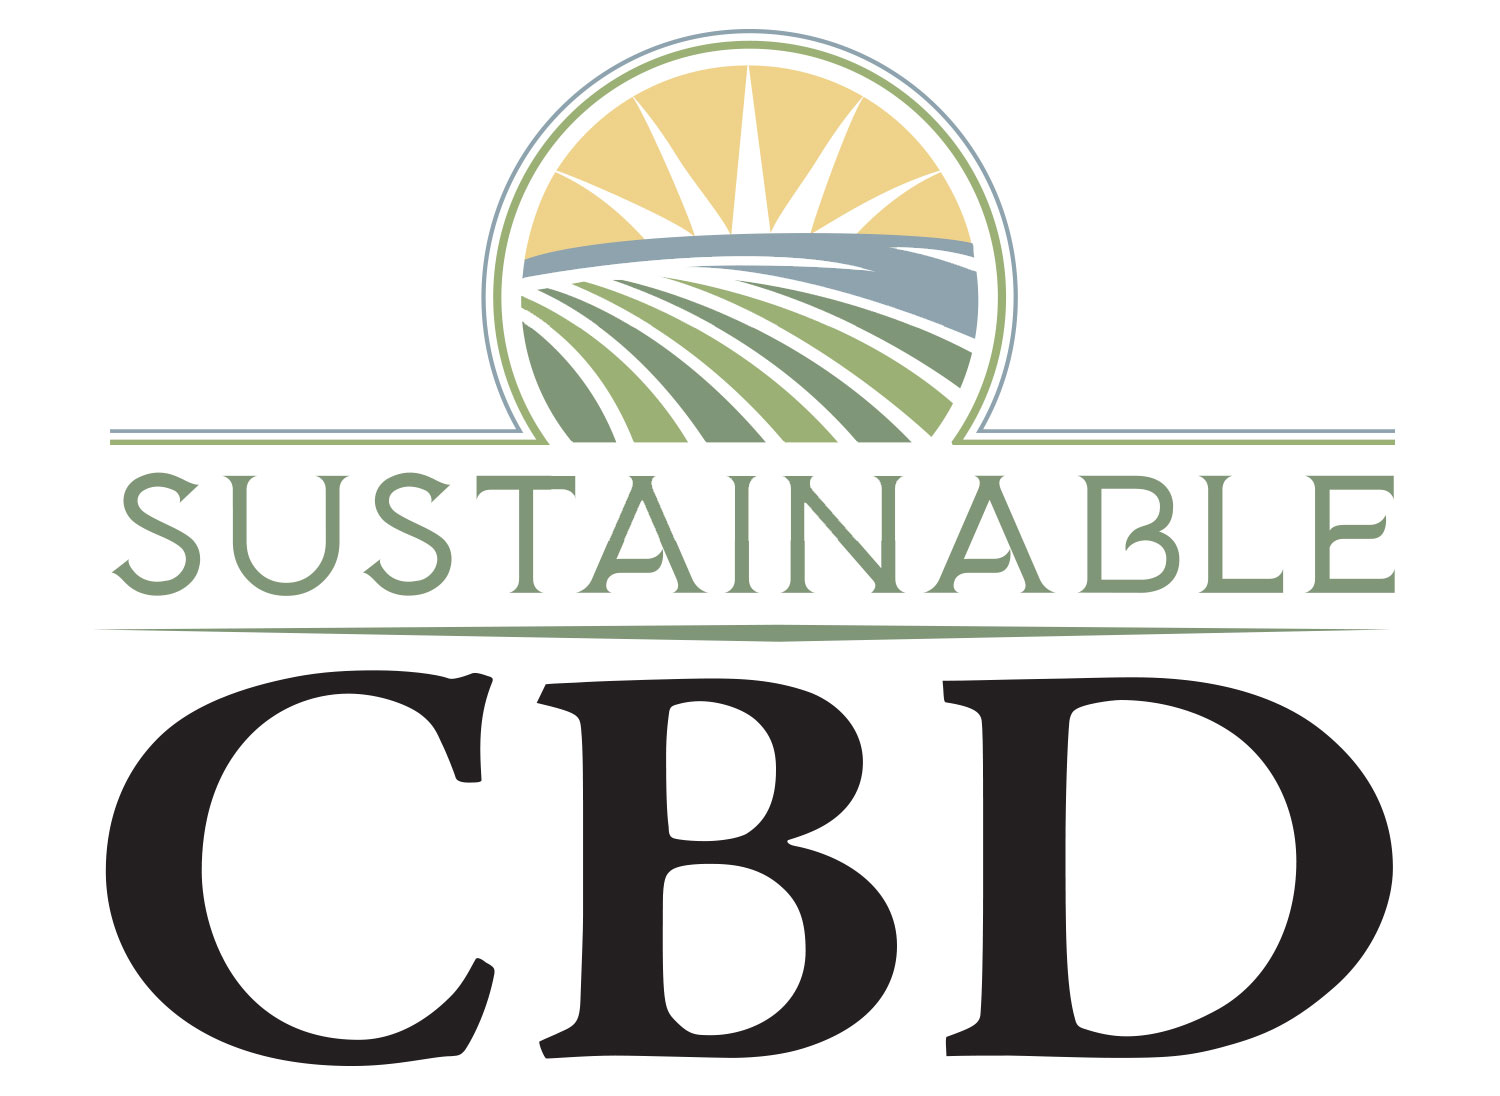 Sustainable CBD